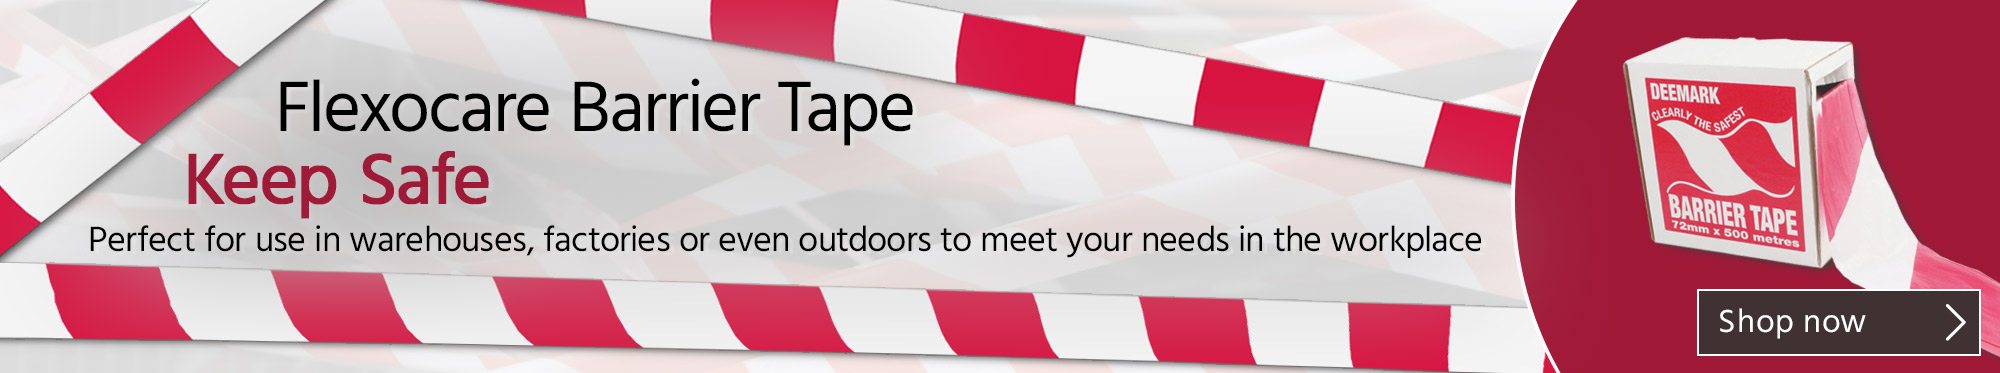 Keep Safe with Flexocare Barrier Tape